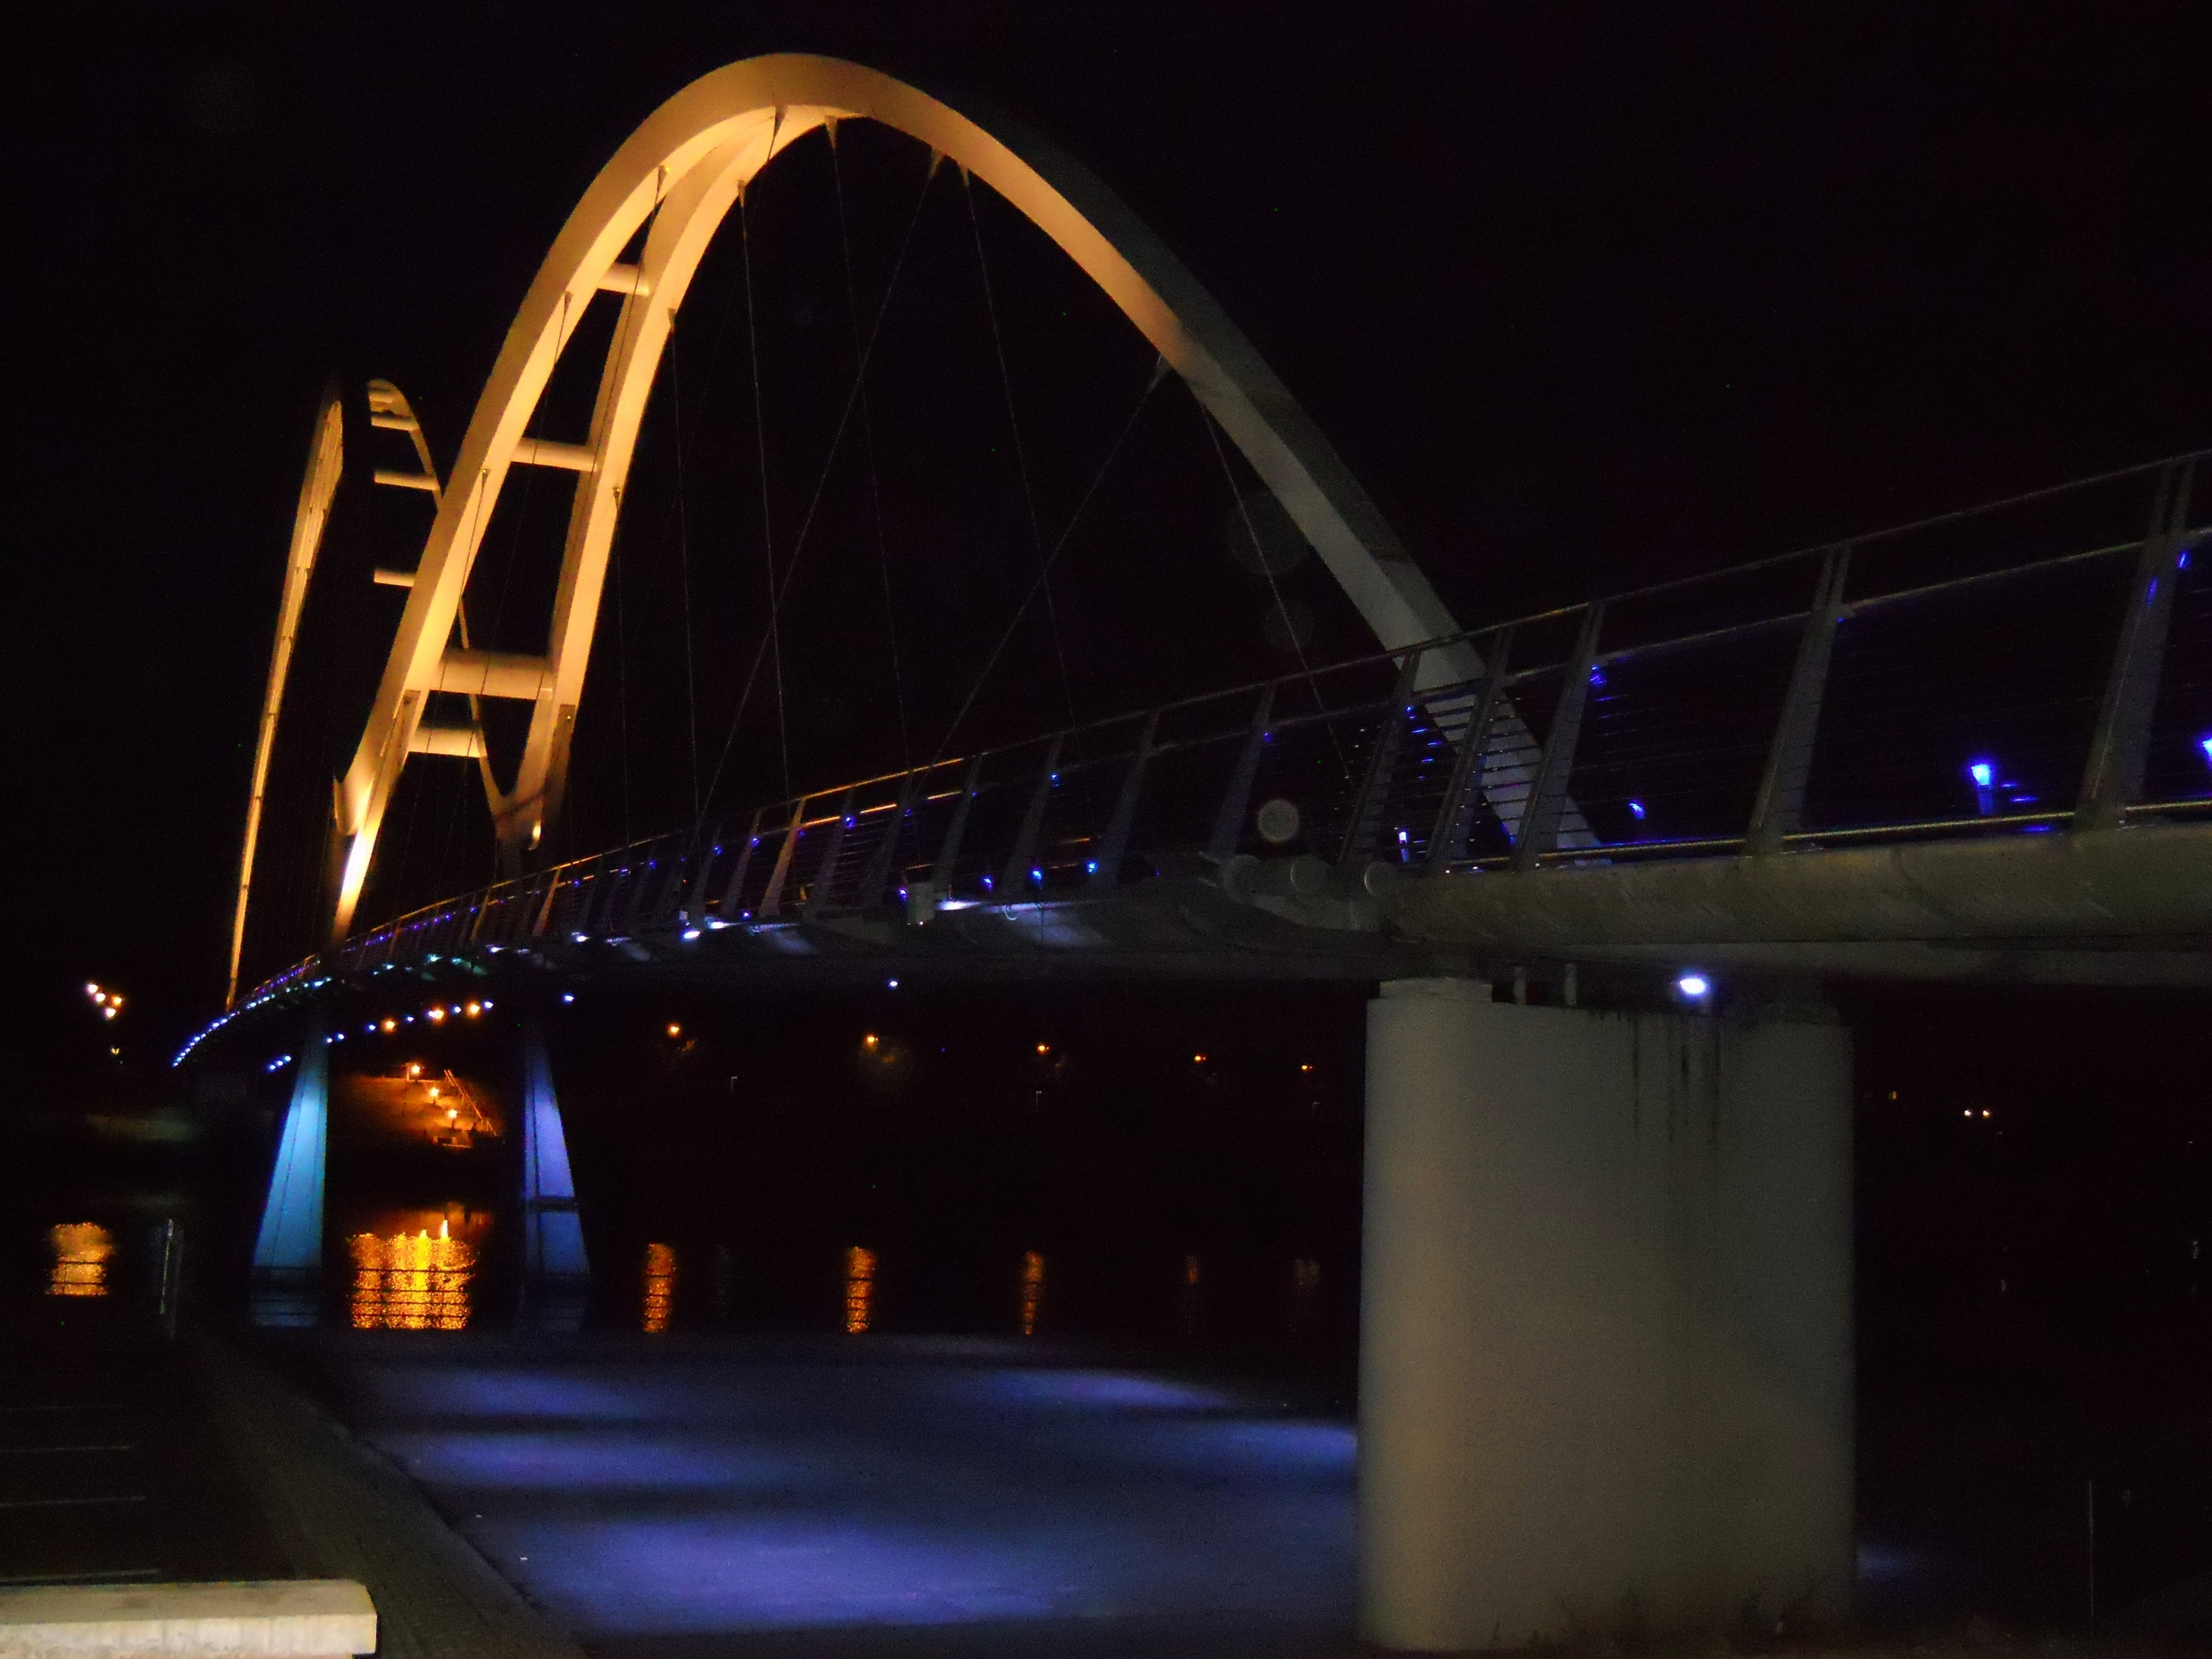 LED lighting changes from blue to white as pedestrians cross the bridge at night - Stockton's human 'comets'